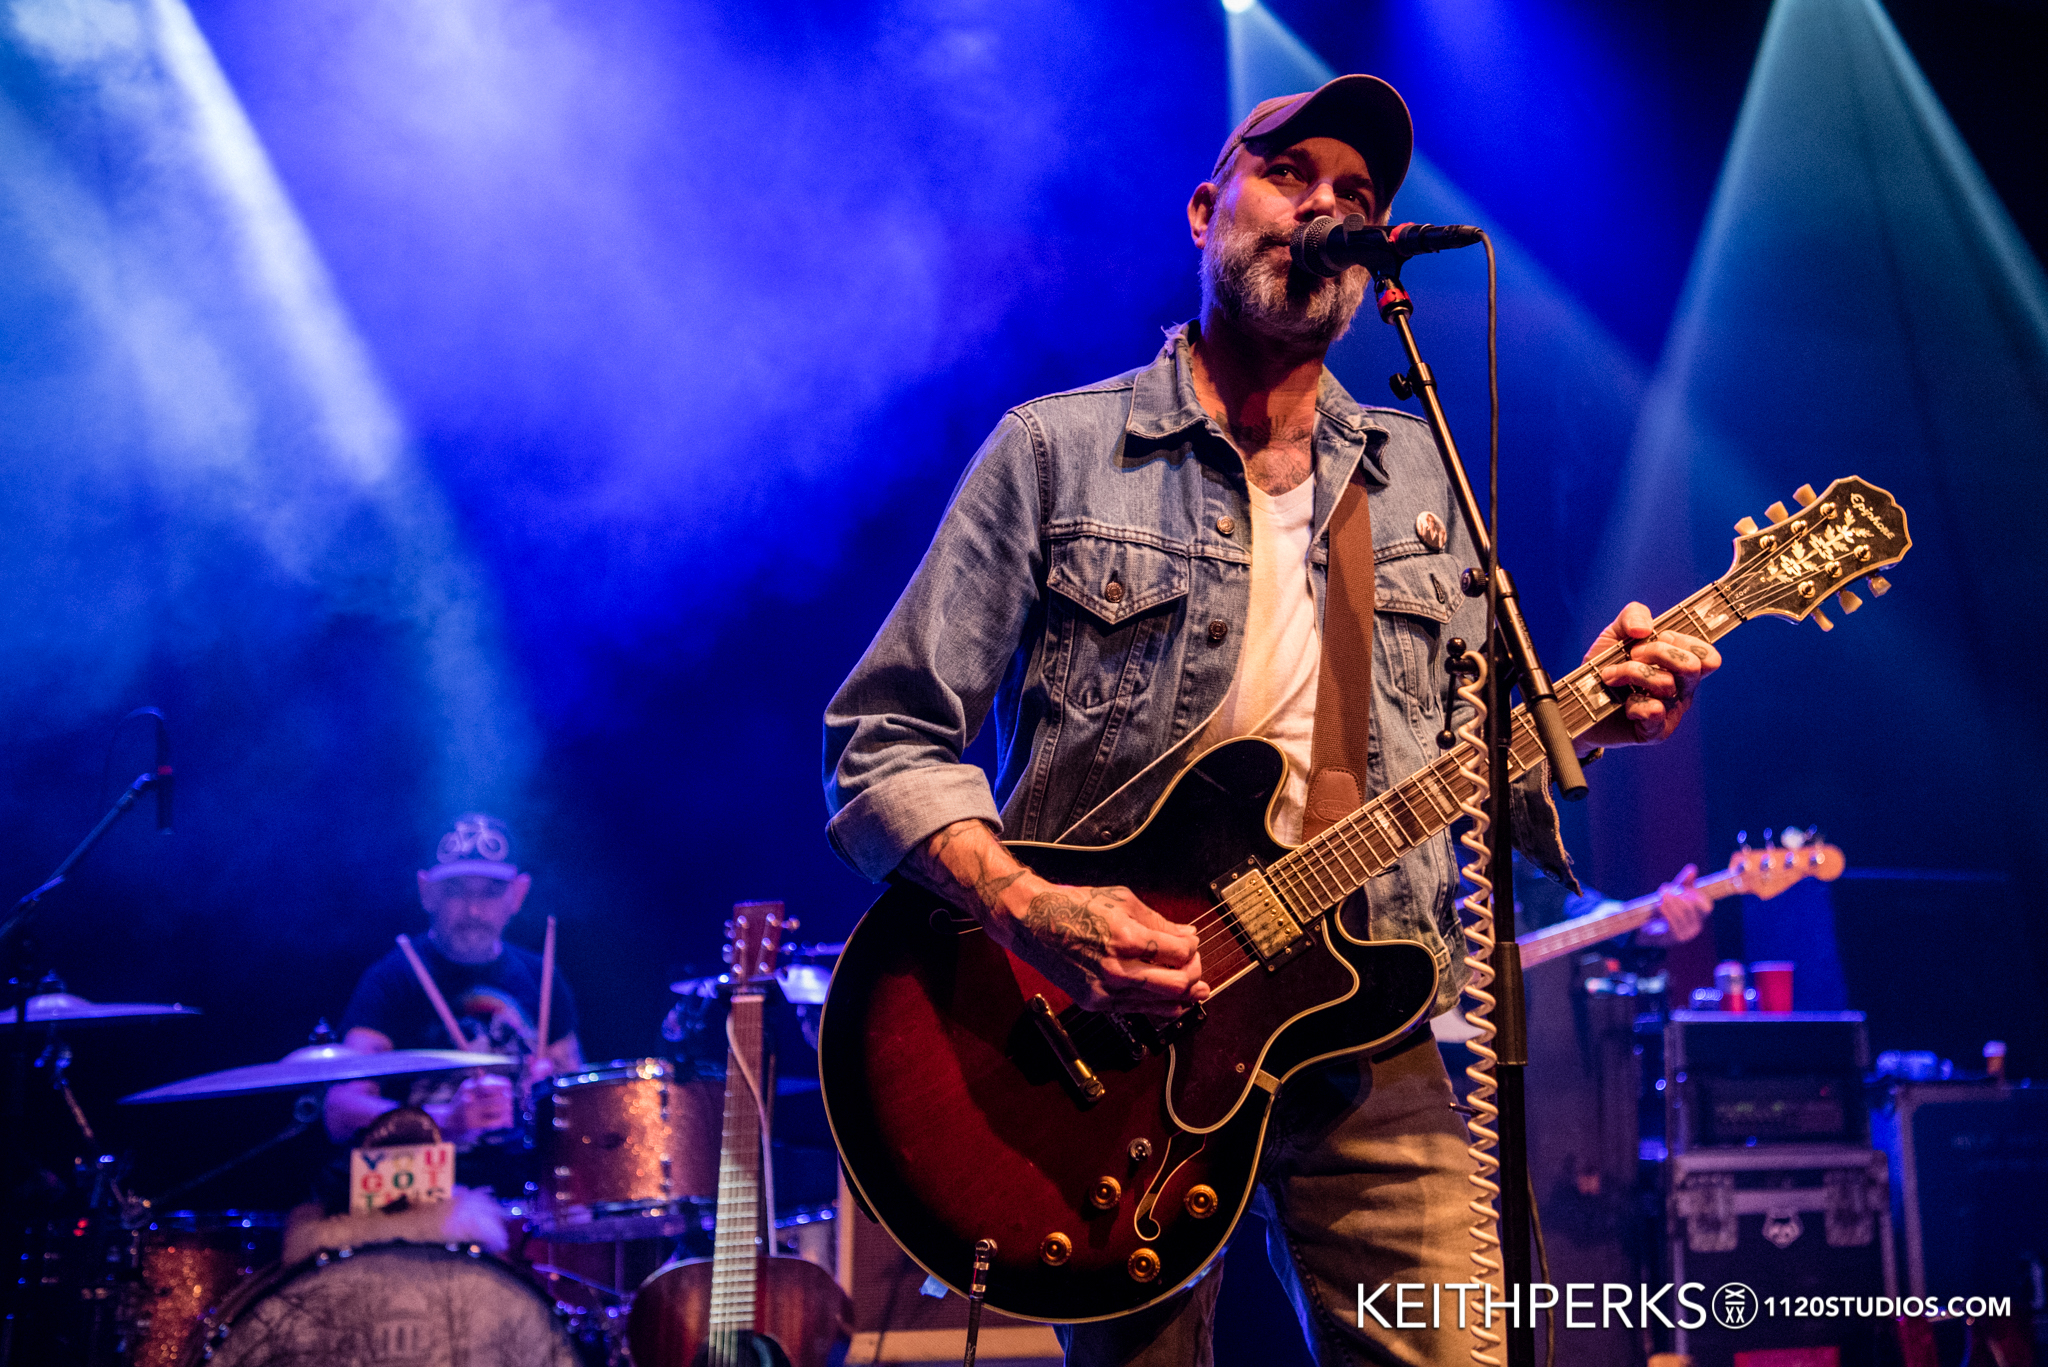 LUCERO MAKES HEARTBREAK AND WHISKEY SOUND LIKE HEAVEN AT MUSIKFEST CAFE